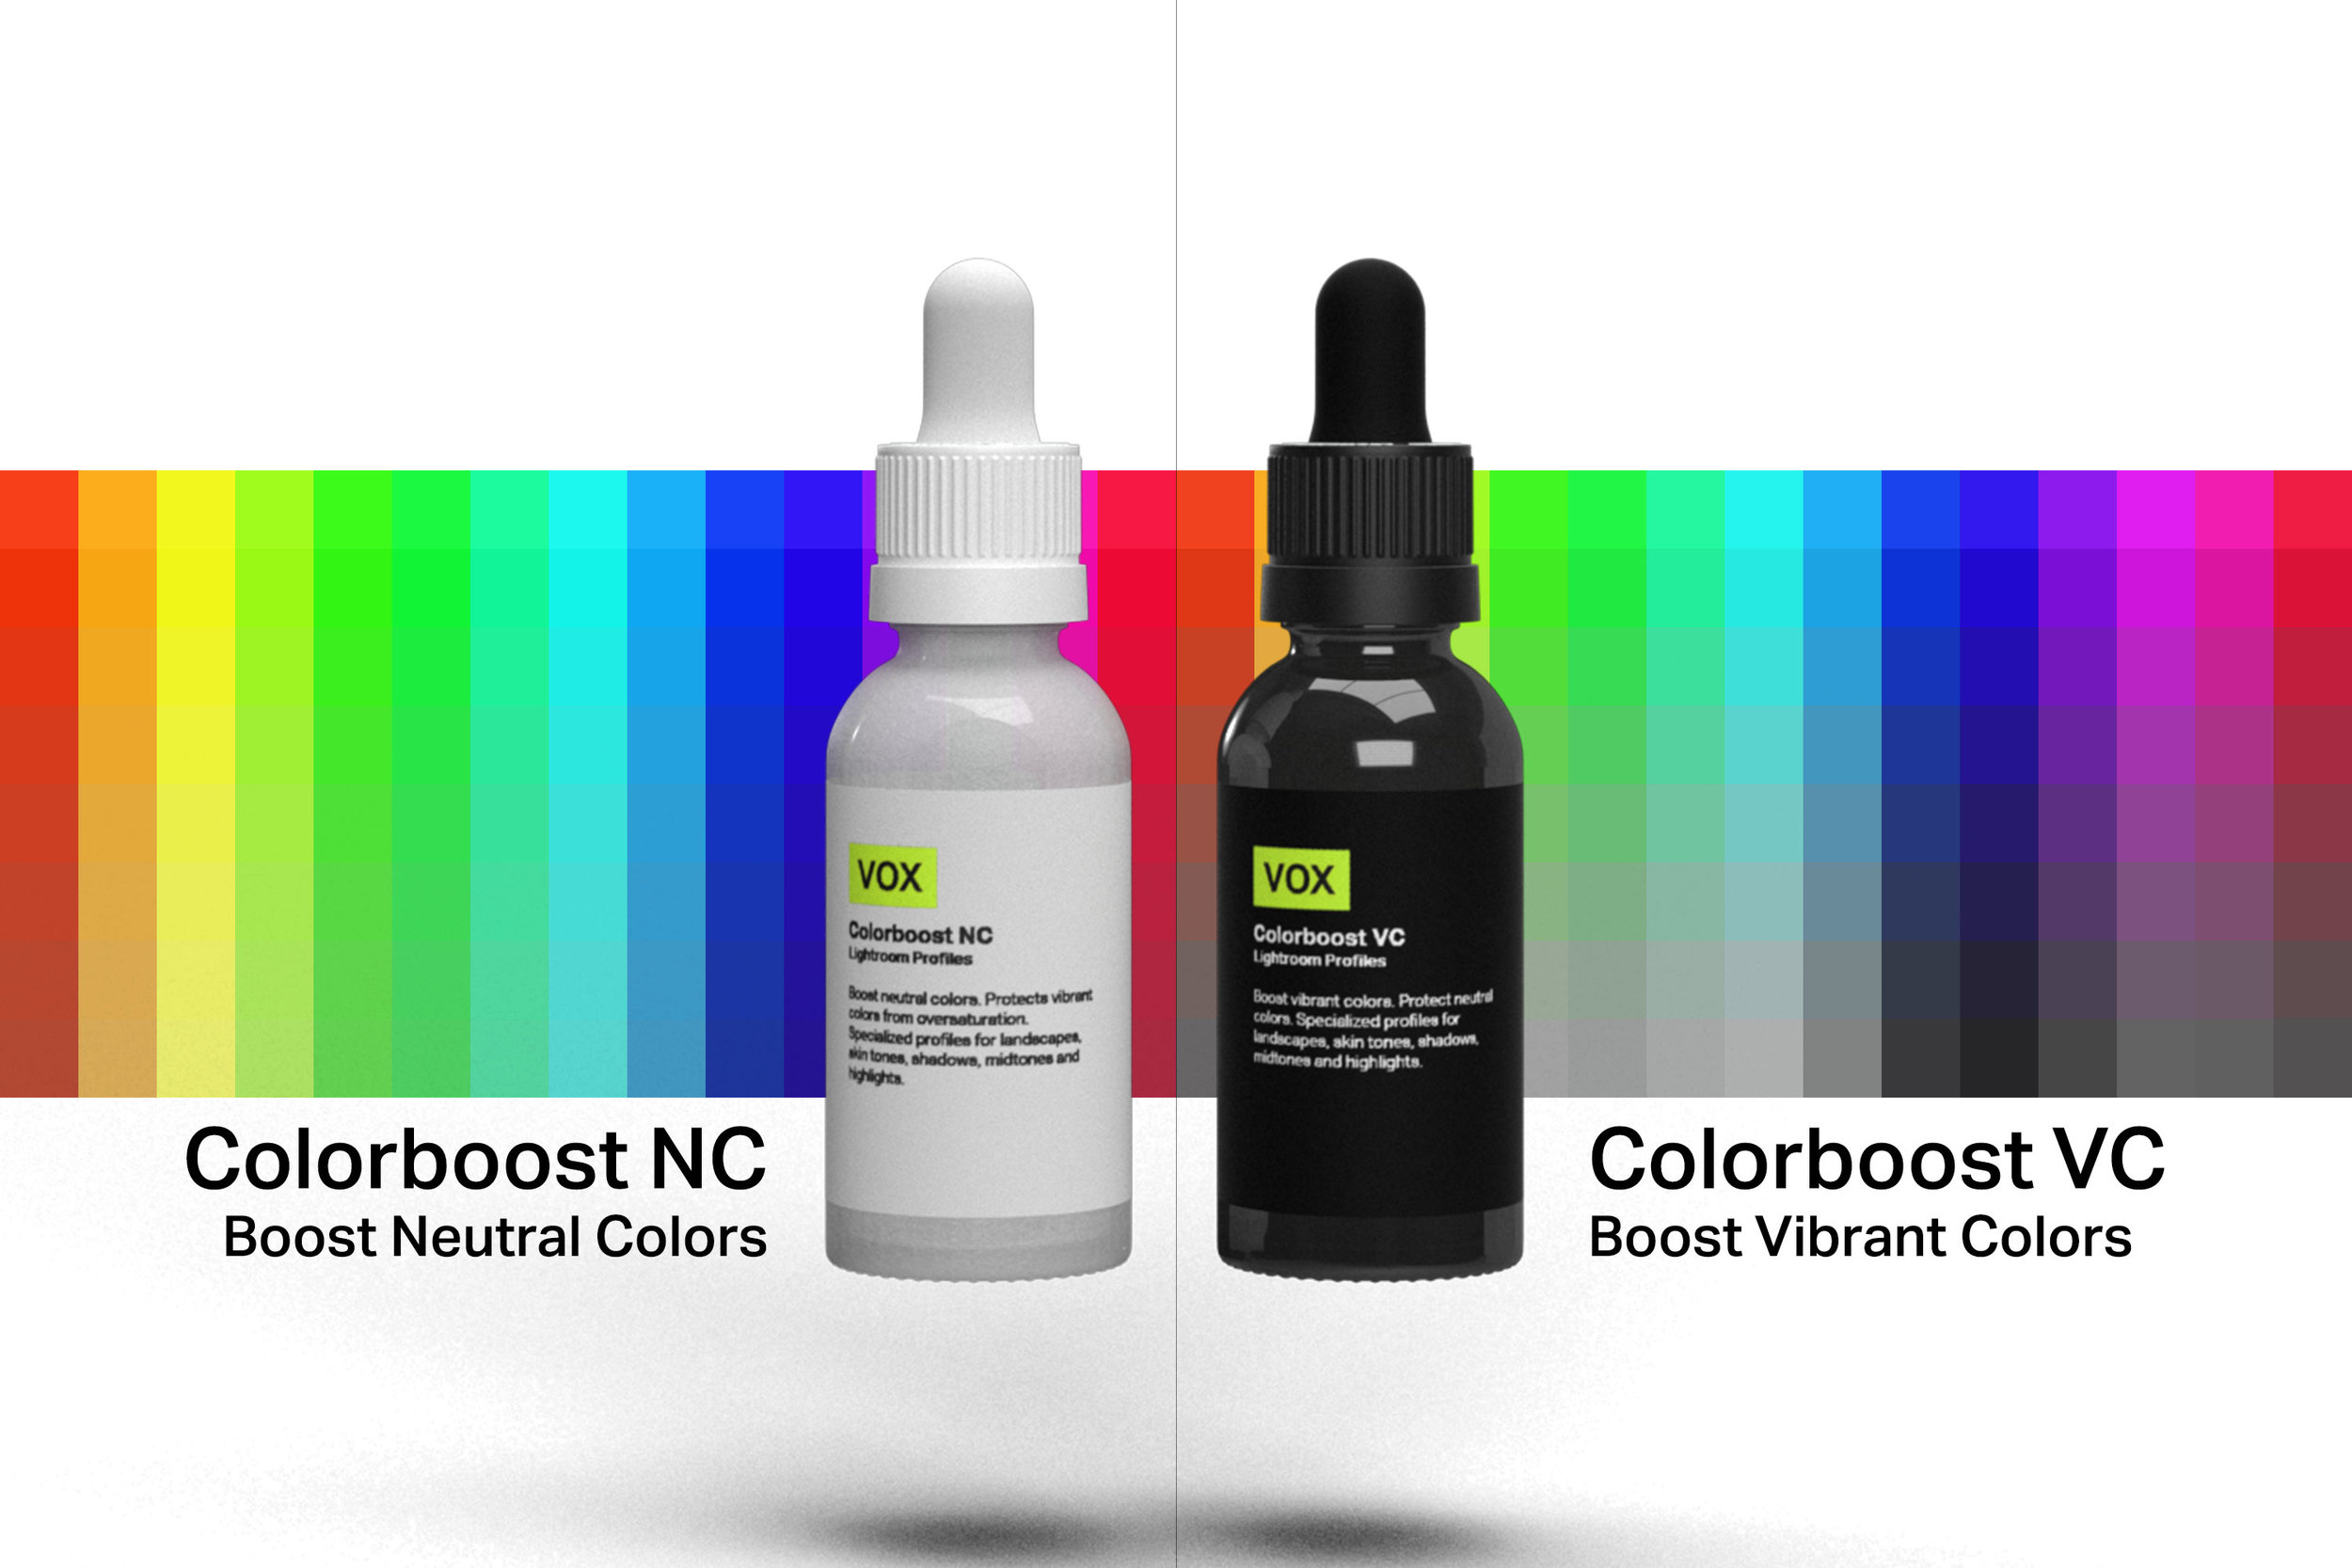 Target neutral or vibrant colors. Your choice. - Use Colorboost NC to boost neutral colors and increase the overall saturation. Want to make colors pop? Use Colorboost VC to boost vibrant colors while keeping neutral colors neutral.